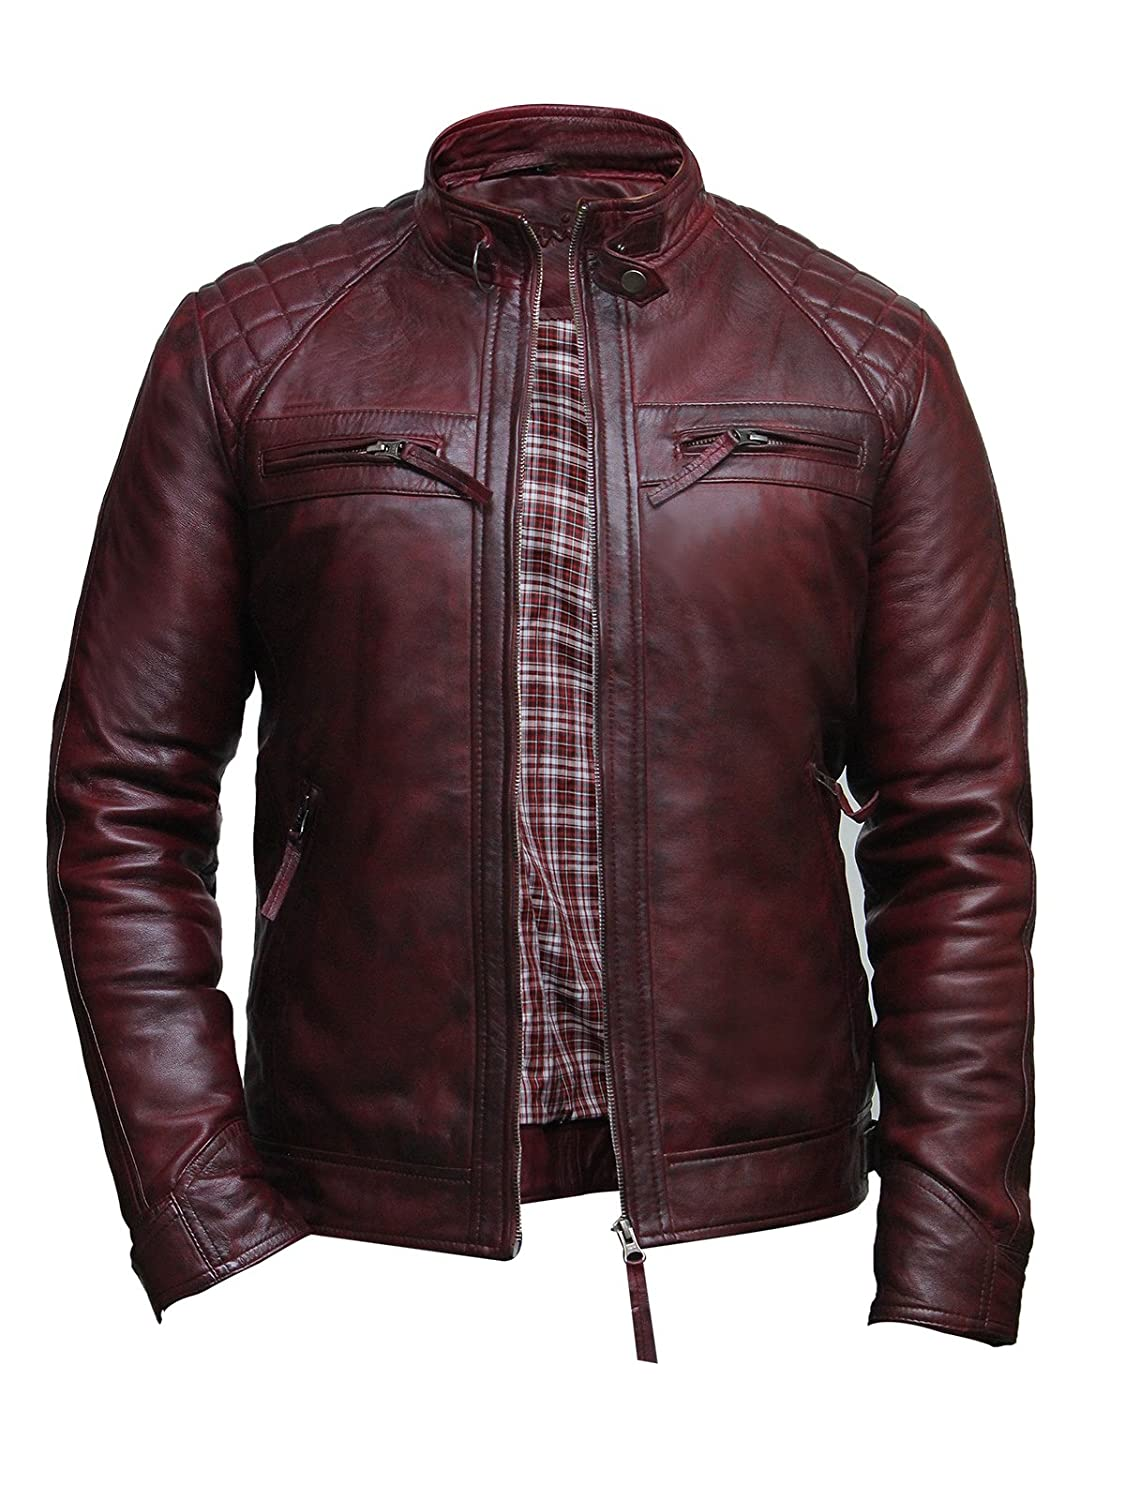 Brandslock Mens Leather Biker Jacket Genuine Lamb Skin Casual Burgundy